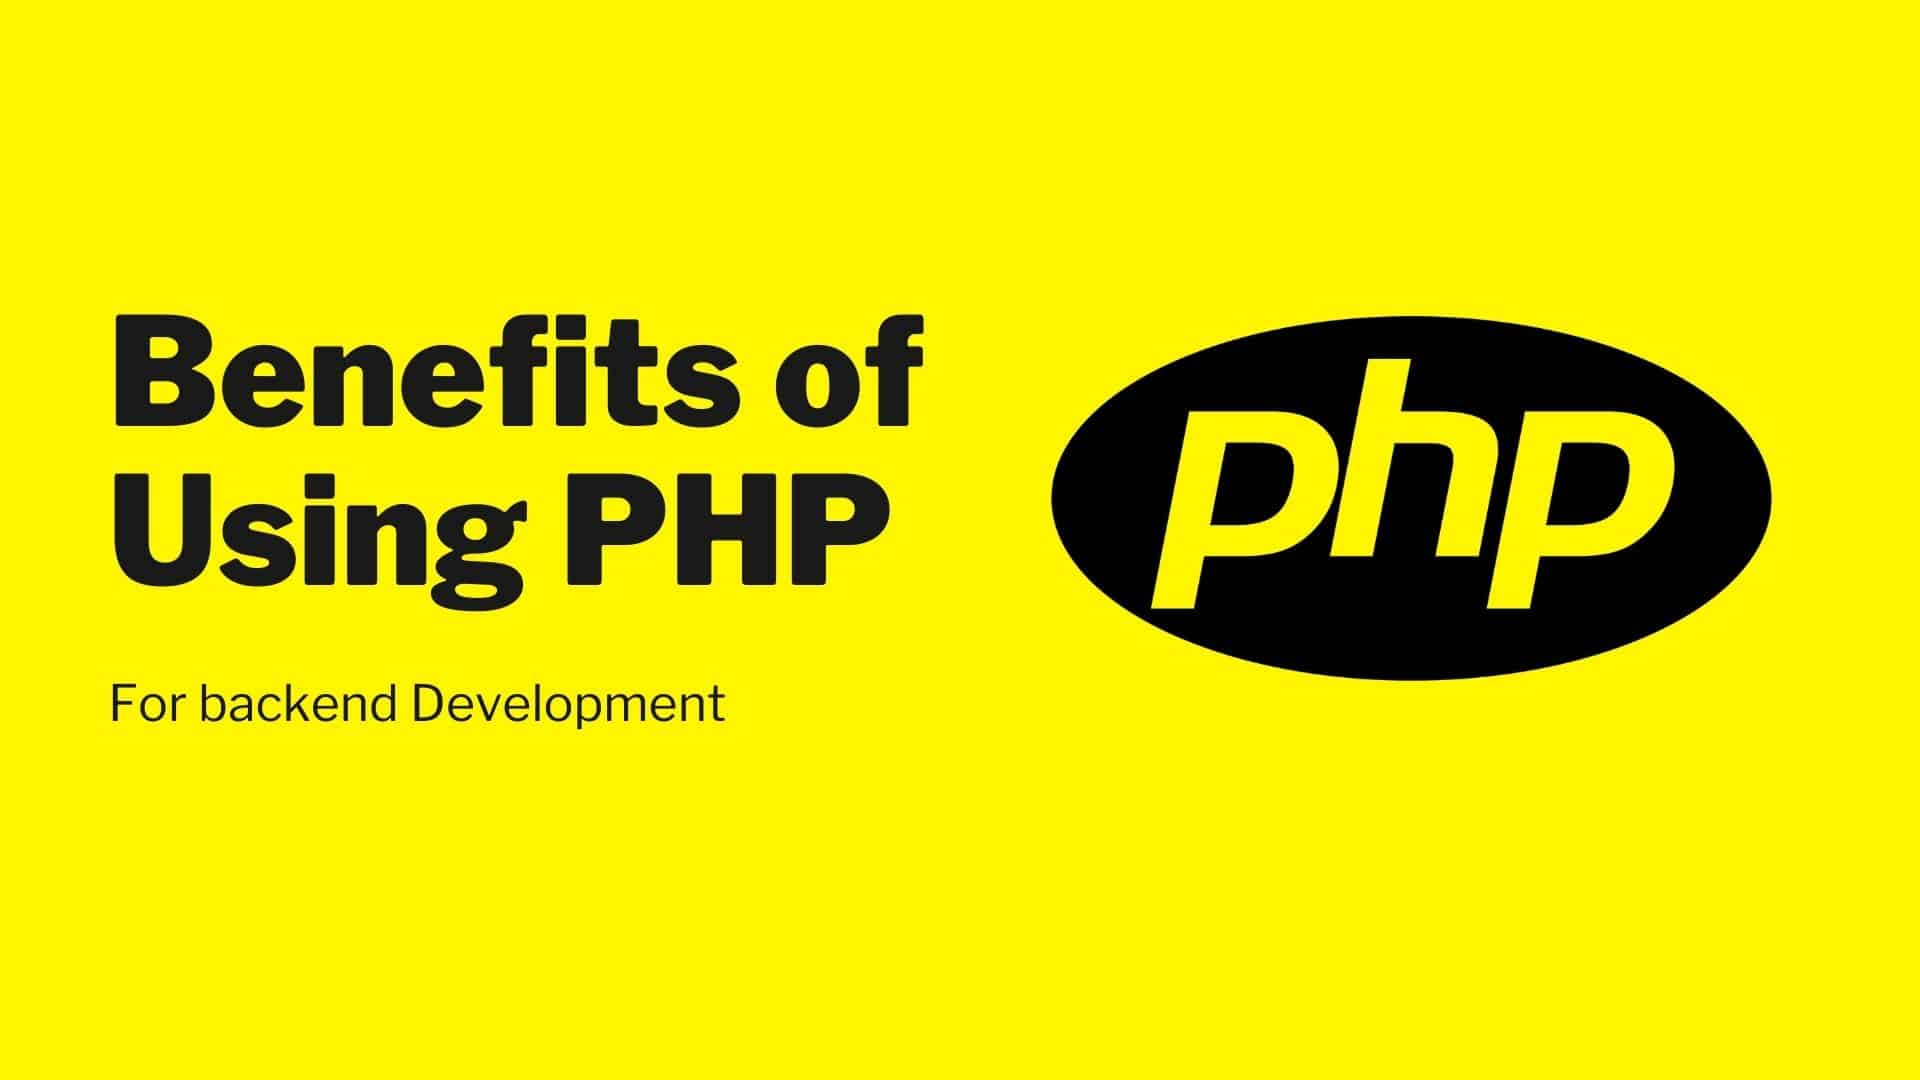 Benefits of Using PHP for Web Development 2021